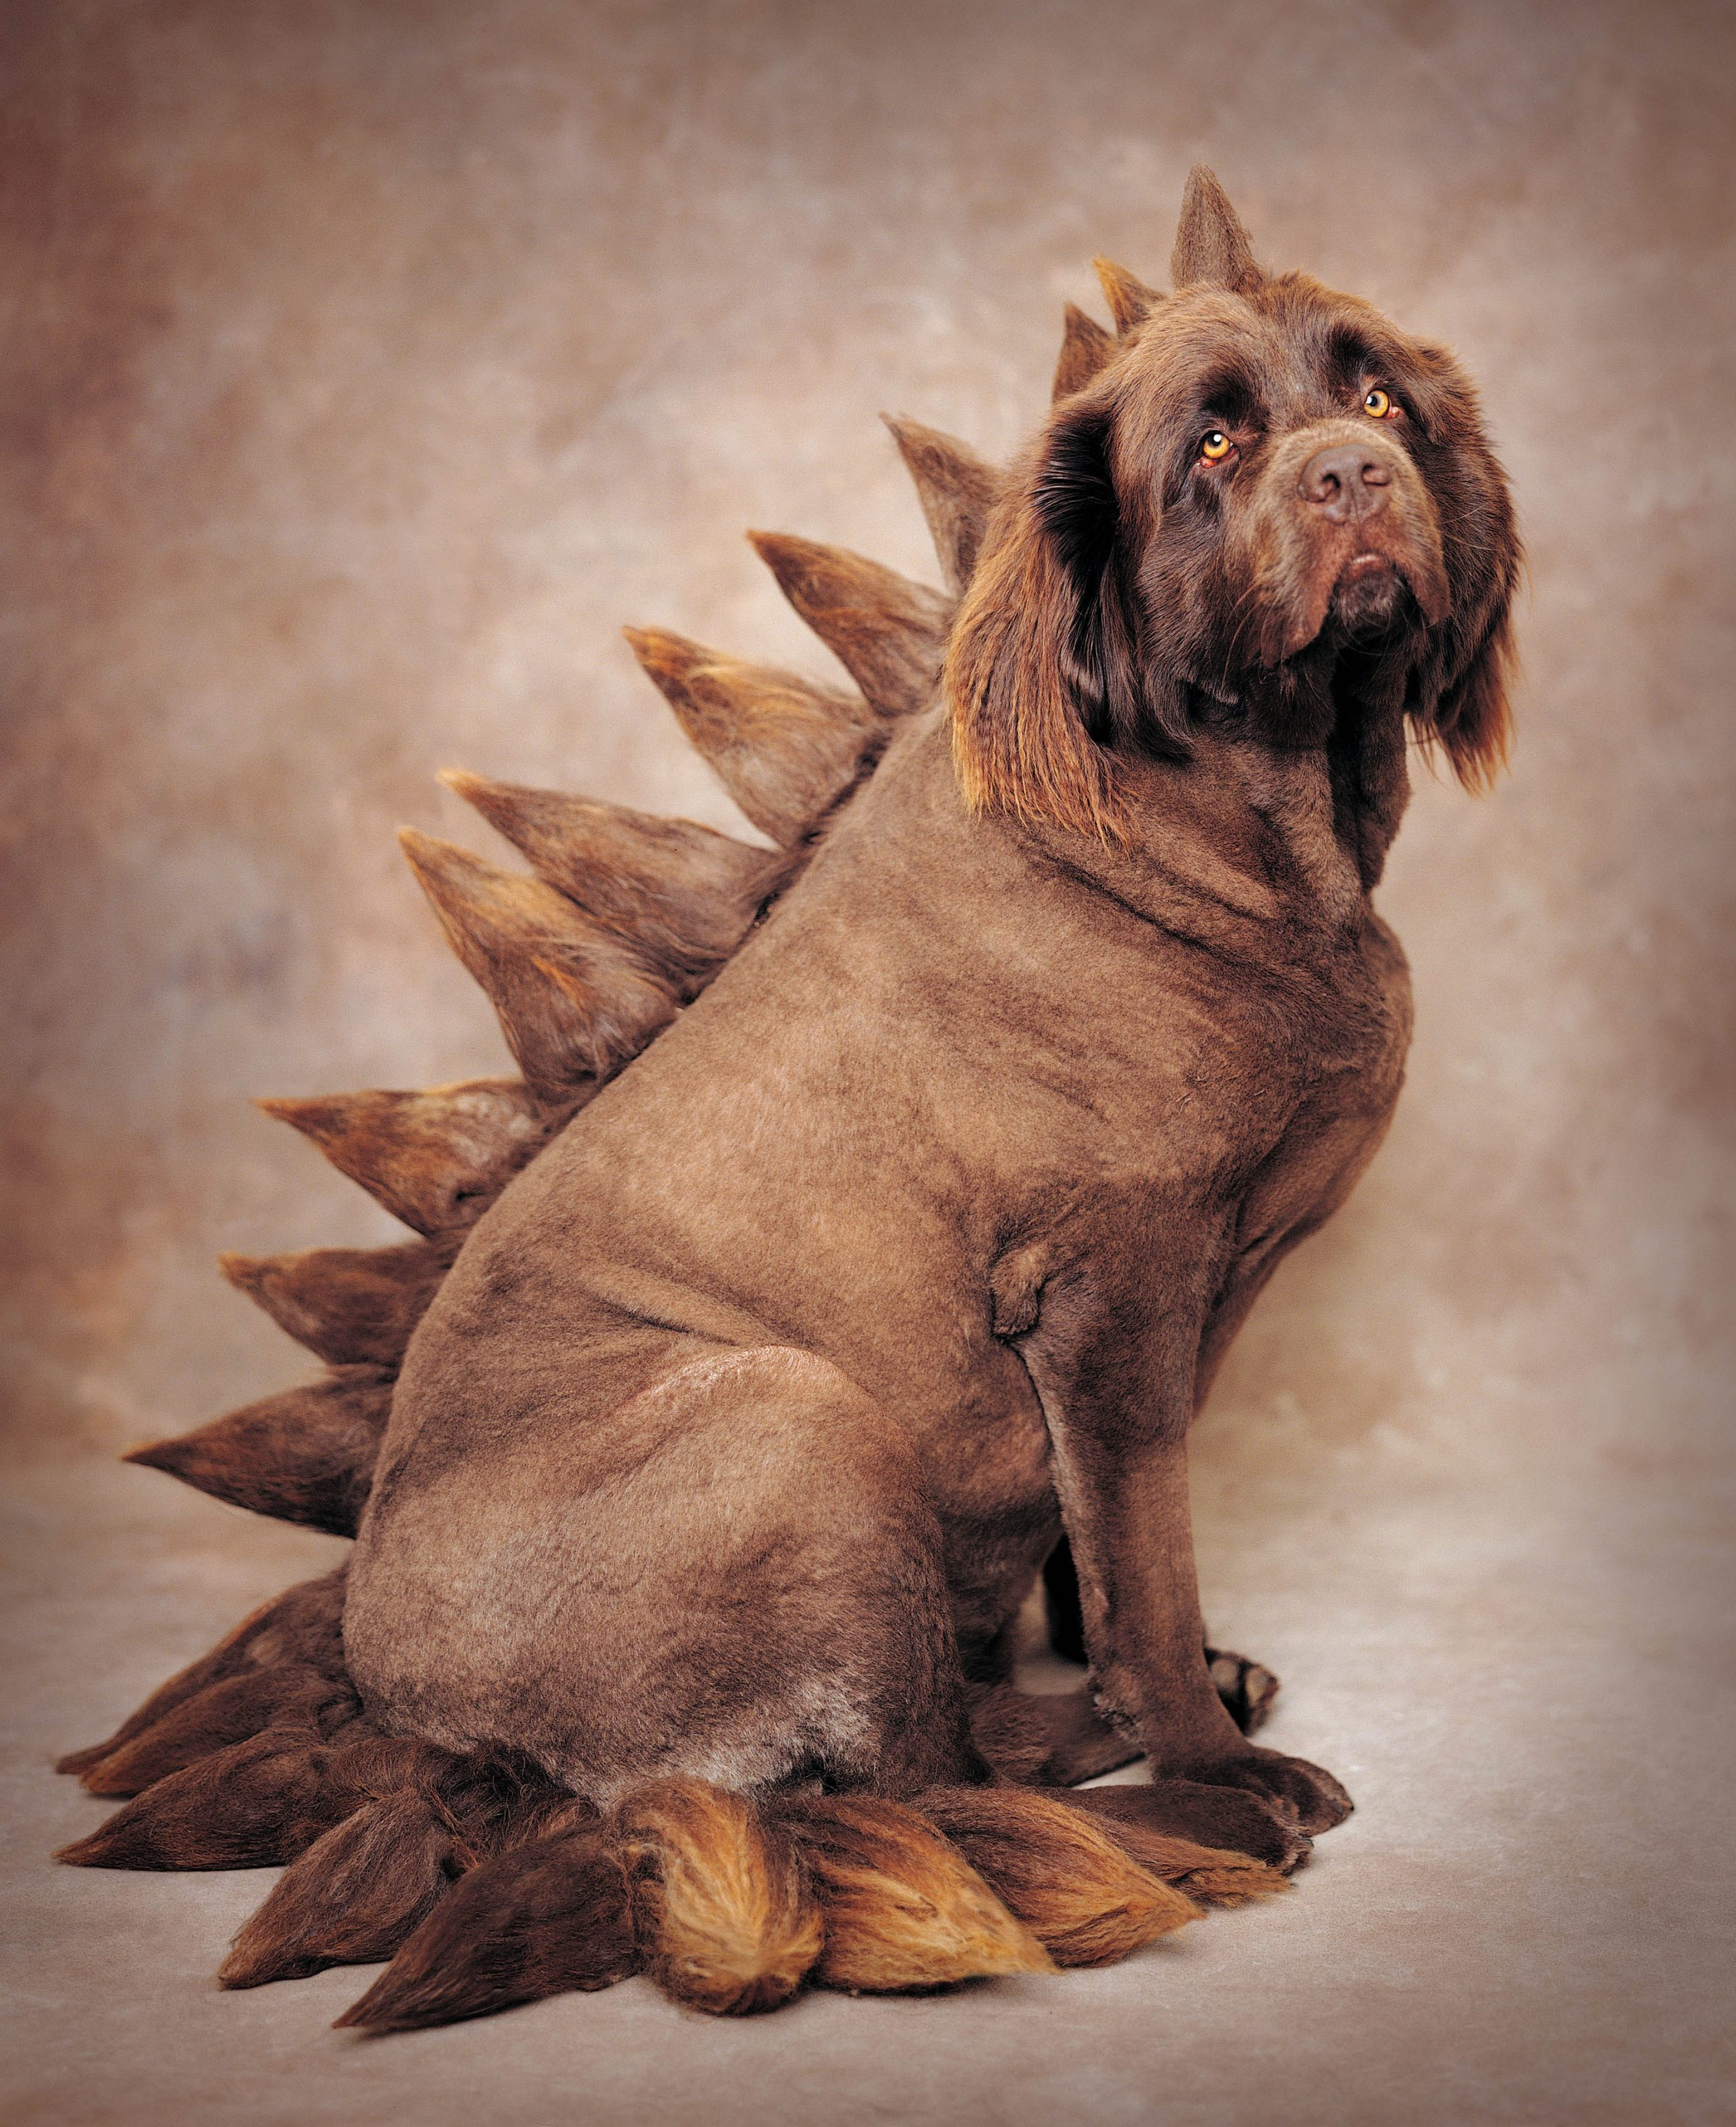 Chocolate Newfoundland Dog photographed as a Dinosaur with spikes down his back.